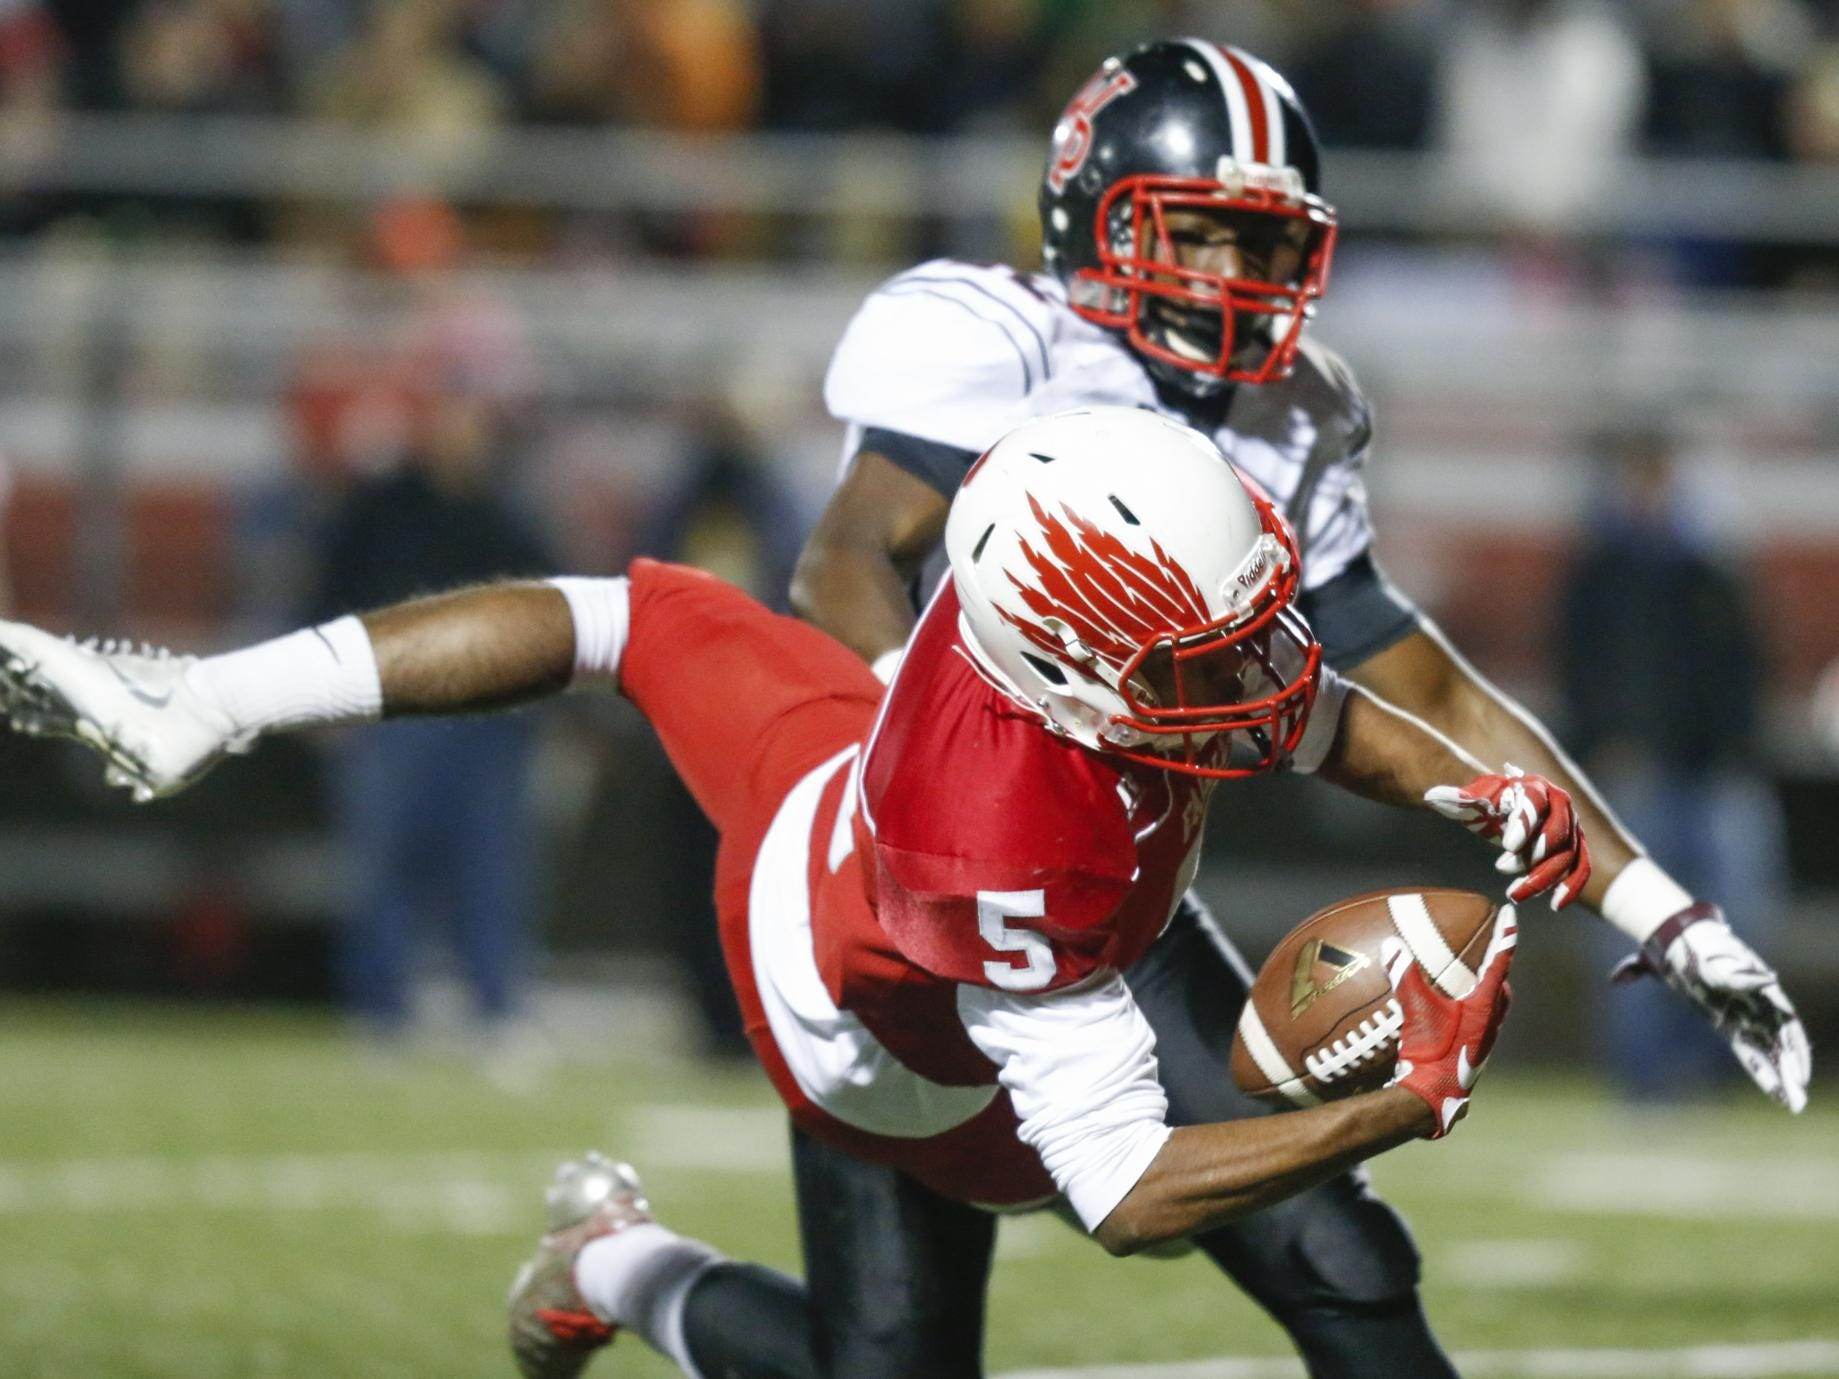 Smyrna receiver Emon Roberts twists for a catch on the Eagles' first drive in the first quarter of a DIAA Division I state tournament semifinal Friday at Smyrna High School. William Penn's Lance Edwards defends.